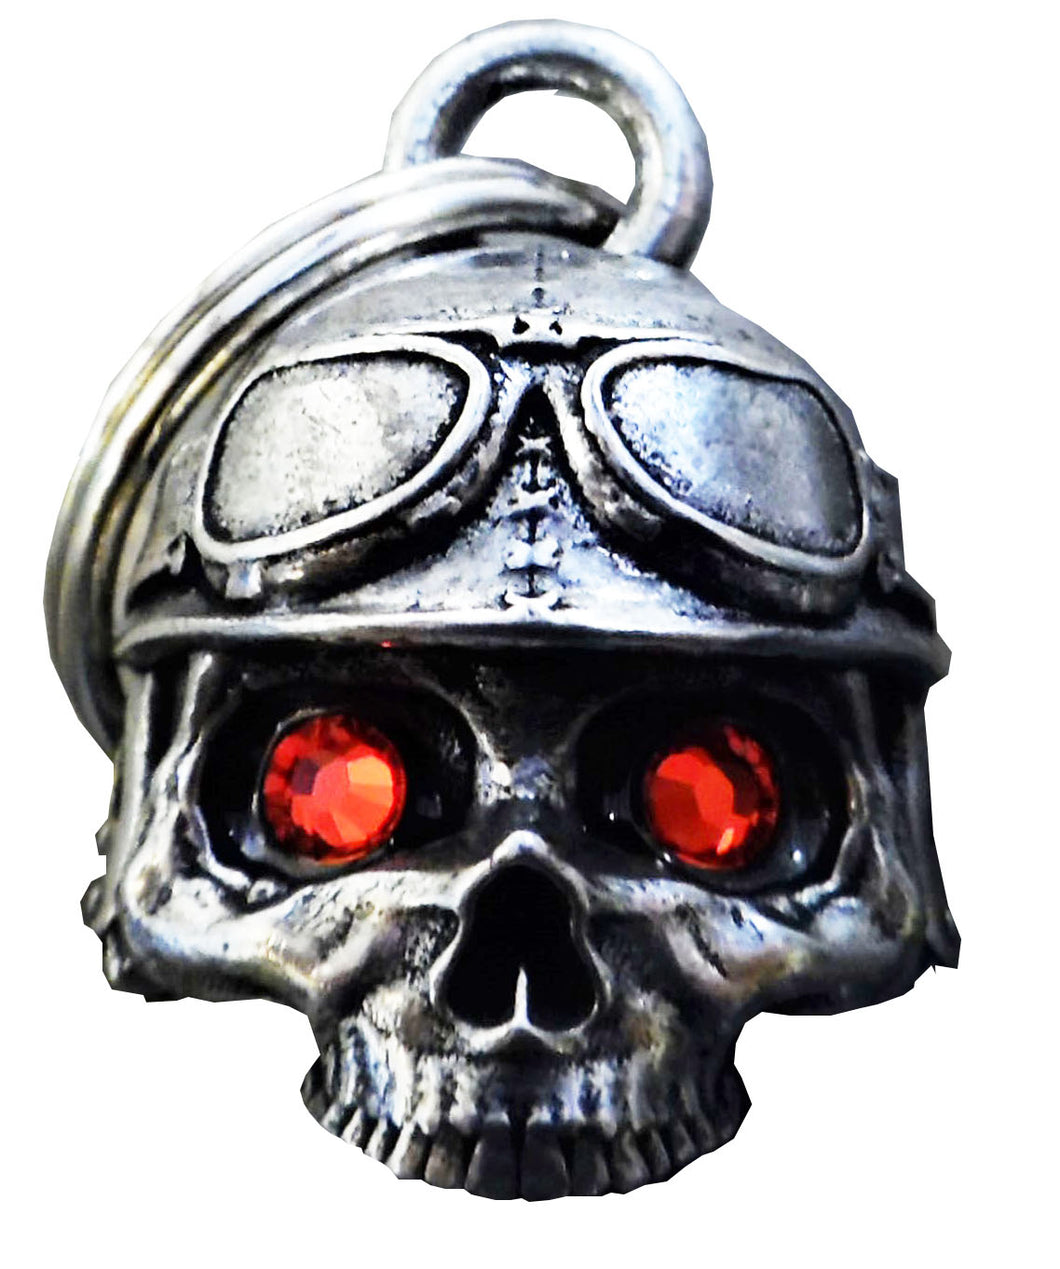 3D Biker Skull Bell with Red Eyes Guardian Gremlin, Lifestyle Accessories - Fat Skeleton UK